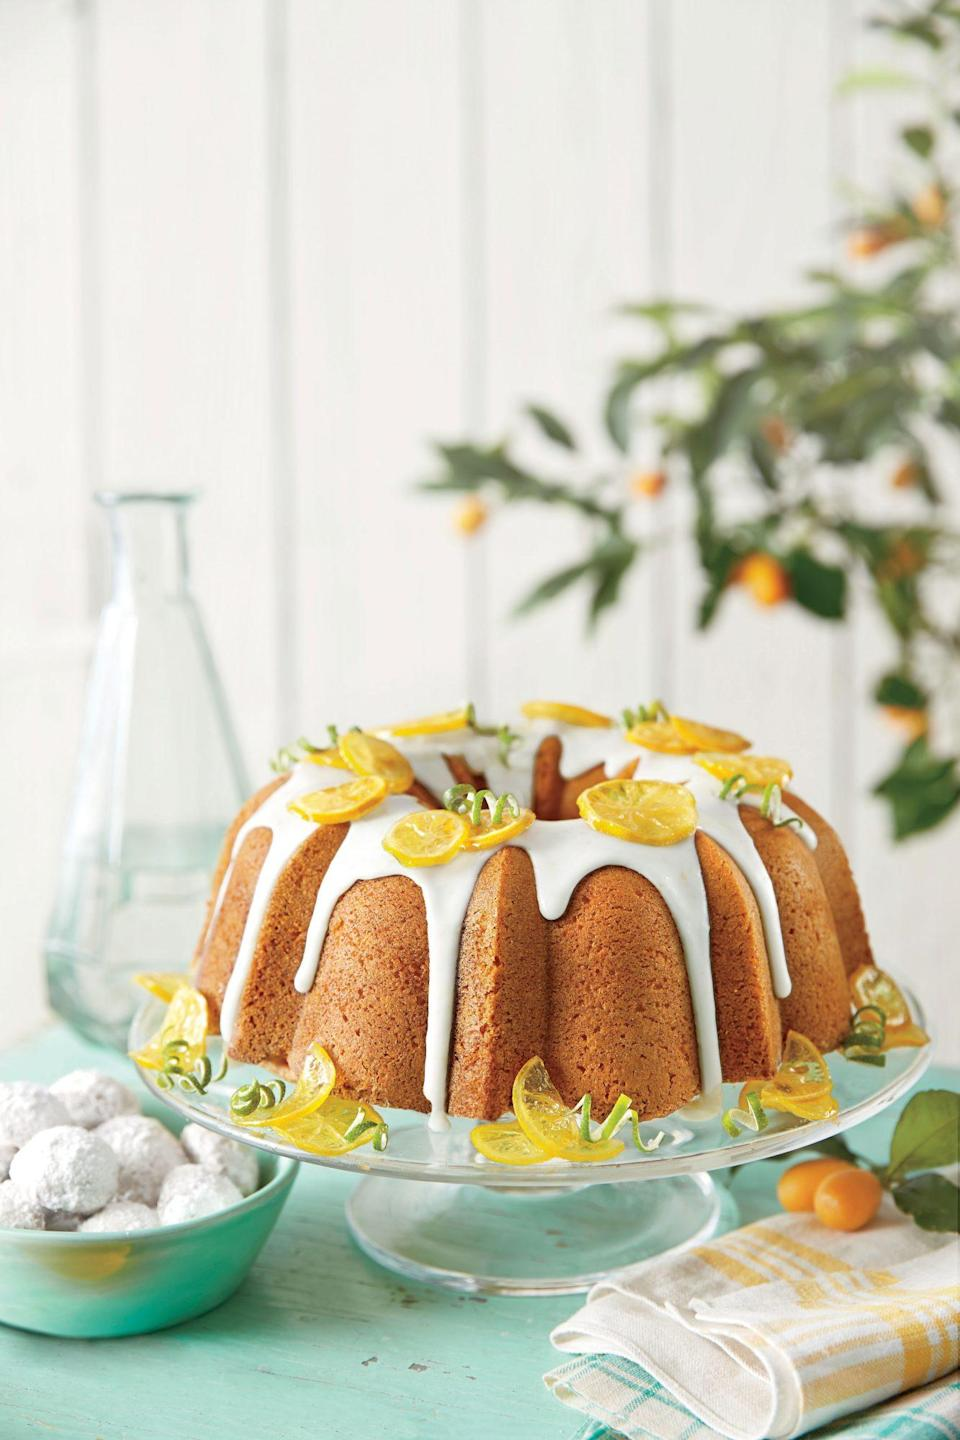 """<p><strong>Recipe: </strong><a href=""""https://www.southernliving.com/syndication/lemon-lime-pound-cake-0"""" rel=""""nofollow noopener"""" target=""""_blank"""" data-ylk=""""slk:Lemon-Lime Pound Cake"""" class=""""link rapid-noclick-resp""""><strong>Lemon-Lime Pound Cake</strong></a></p> <p> """"There's nothing like the scent of a pound cake cooling on the counter in the middle of summer. Our Lemon-Lime version is a riff on the 7UP pound cakes I remember from my childhood—complete with that subtle citrus flavor that somehow kicks the heavyweight of desserts into refreshing territory. Oh, and it makes one of the prettiest batters I've ever set eyes on. You'll be tempted to lick the bowl clean before the Bundt even makes it to the oven. I serve it both with the glaze and without, depending on how much time I have on my hands."""" Patricia Shannon, Senior Editor</p>"""